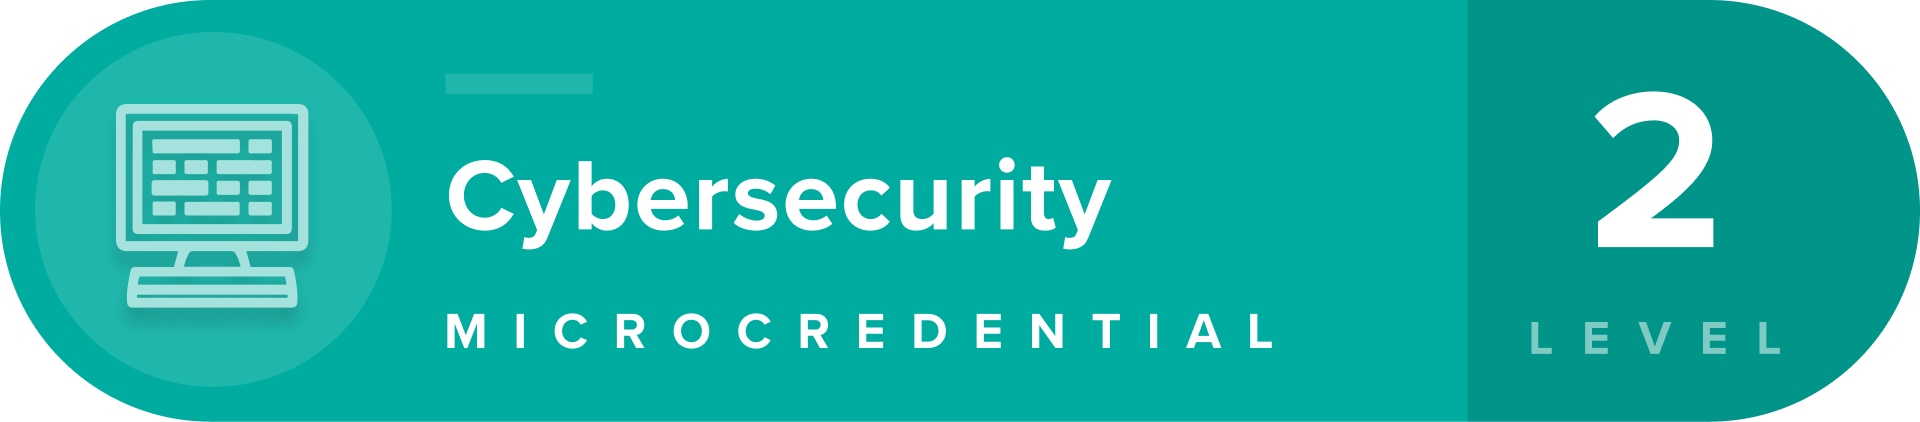 Cybersecurity microcredentials level 2 badge